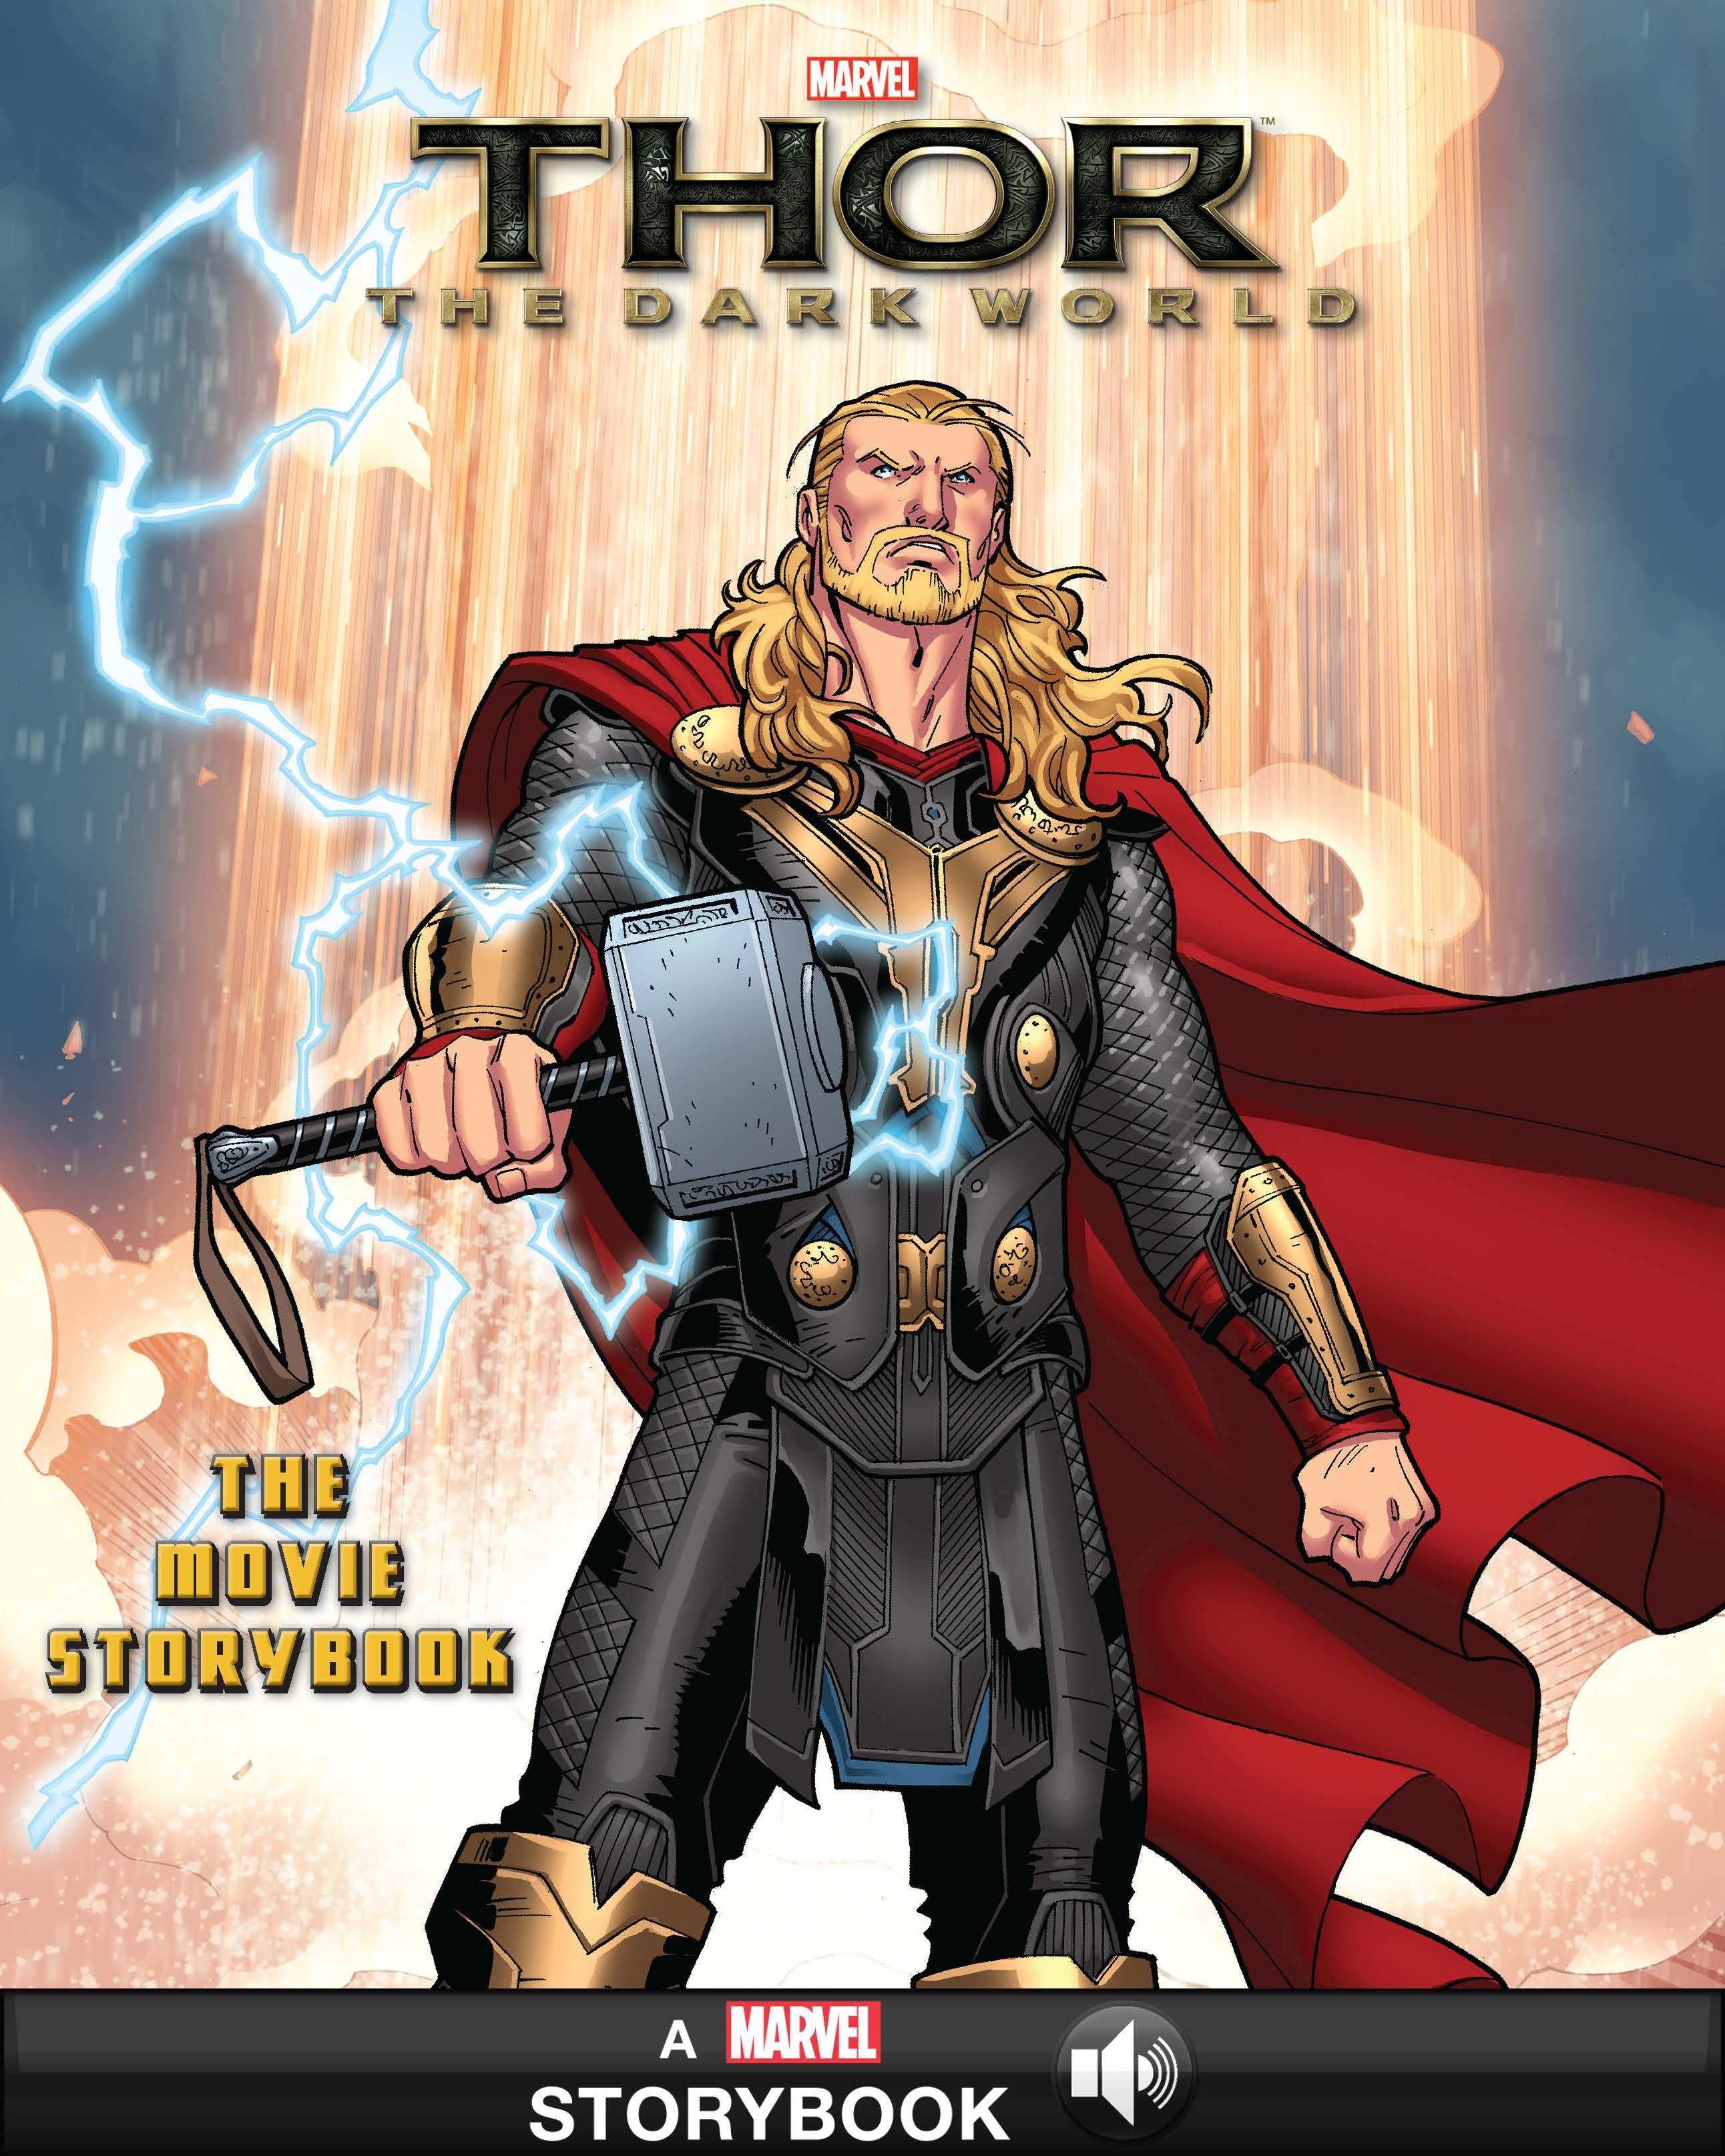 Gods And Warriors Books In Order: Thor: The Dark World Movie Storybook